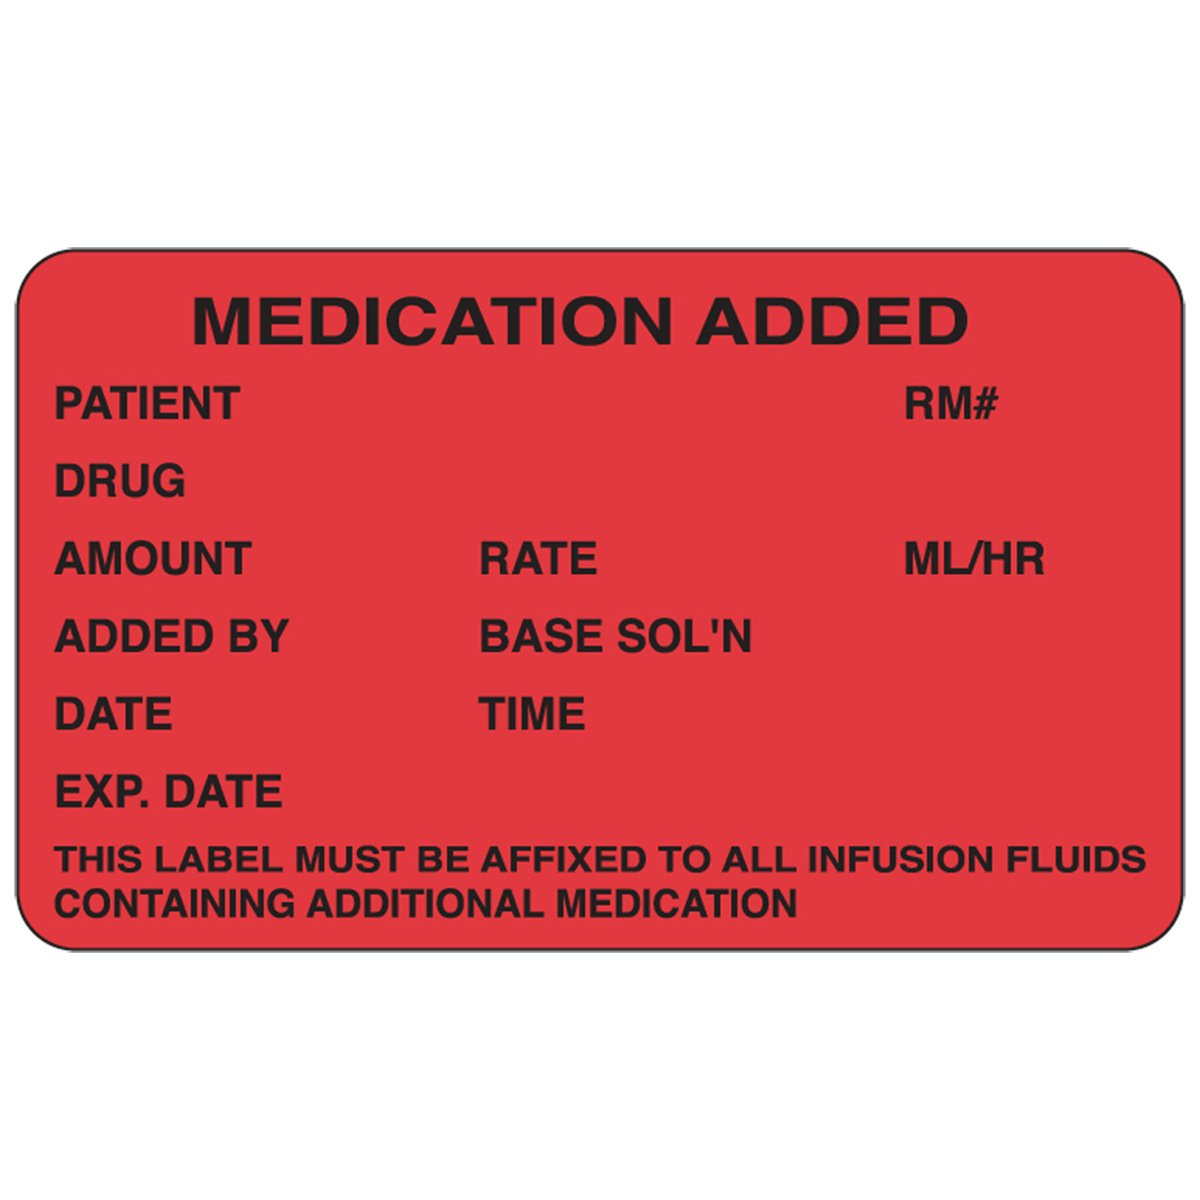 PDC Healthcare 59704613 Paper Label, Permanent, Medication Added, 2 1/2' x 1 1/2', Red (Pack of 1000) 2 1/2 x 1 1/2